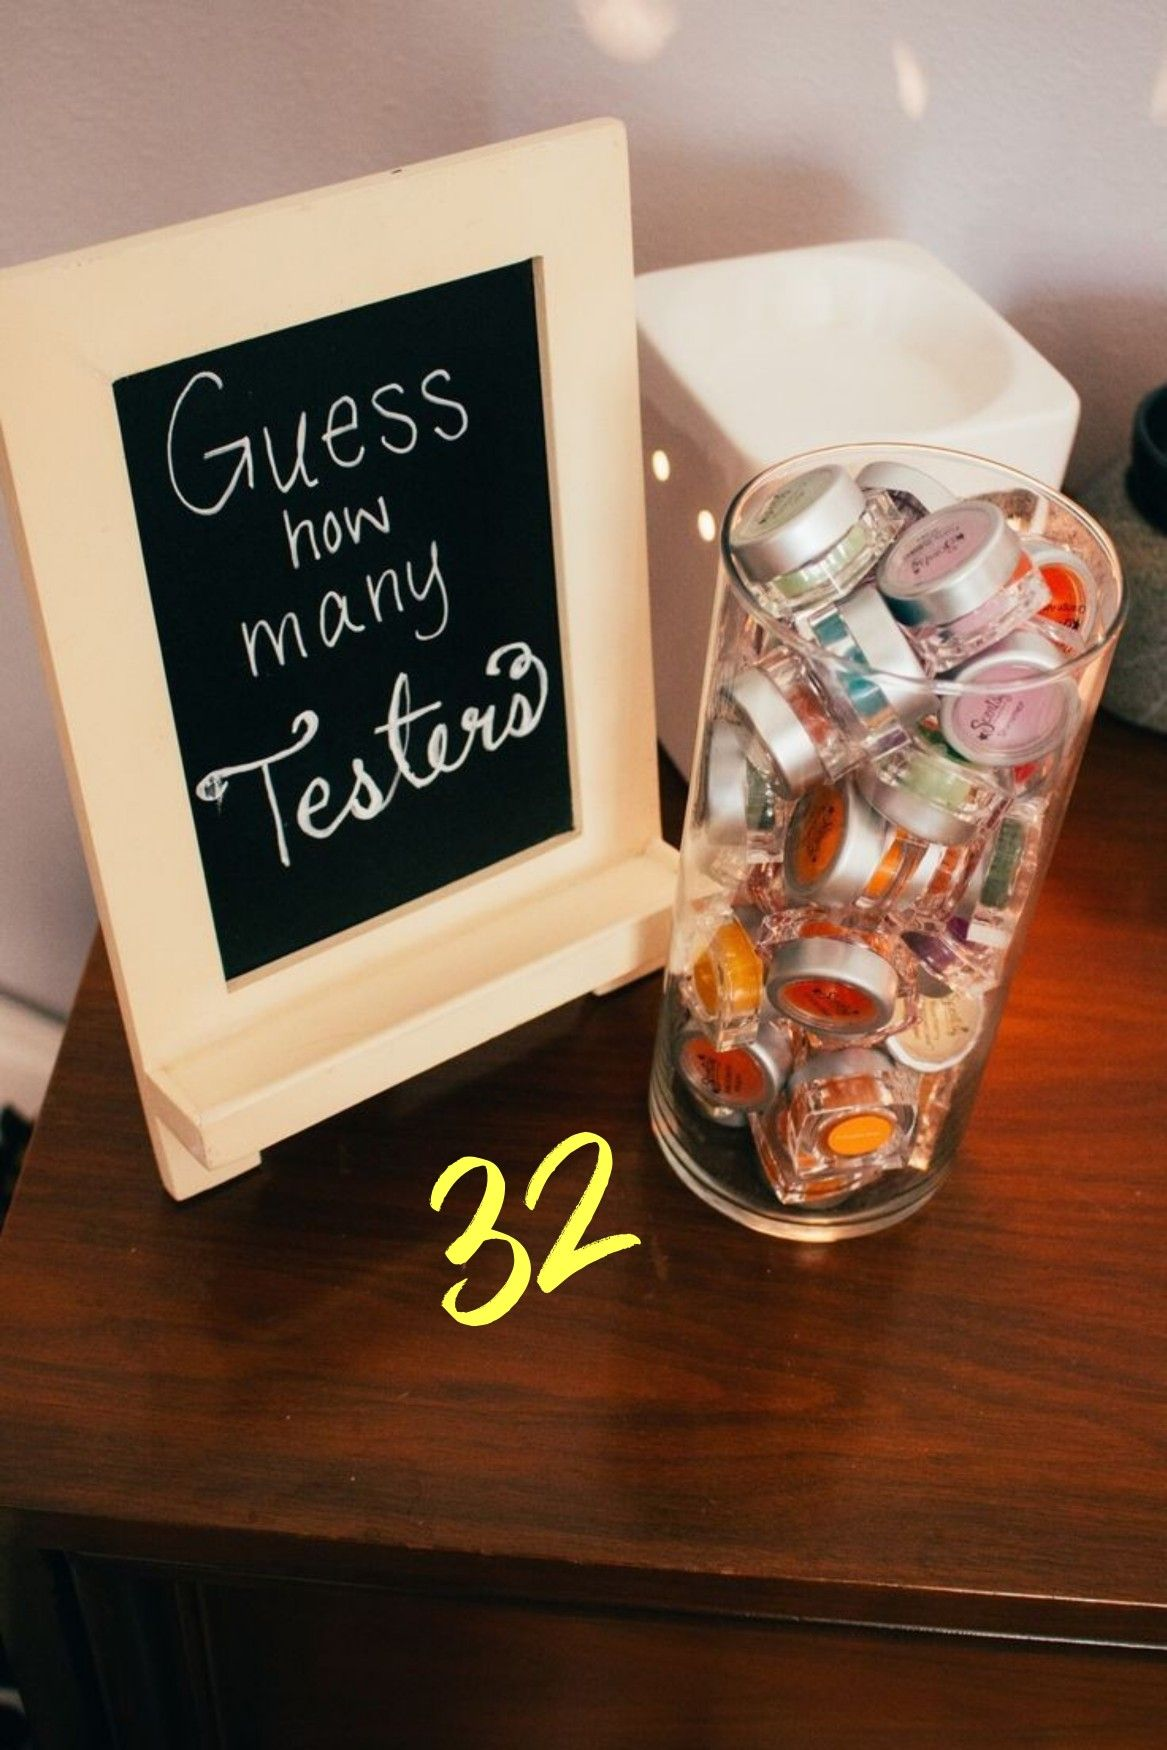 Pin by Bscent with Brueske on Party2 in 2020 Scentsy